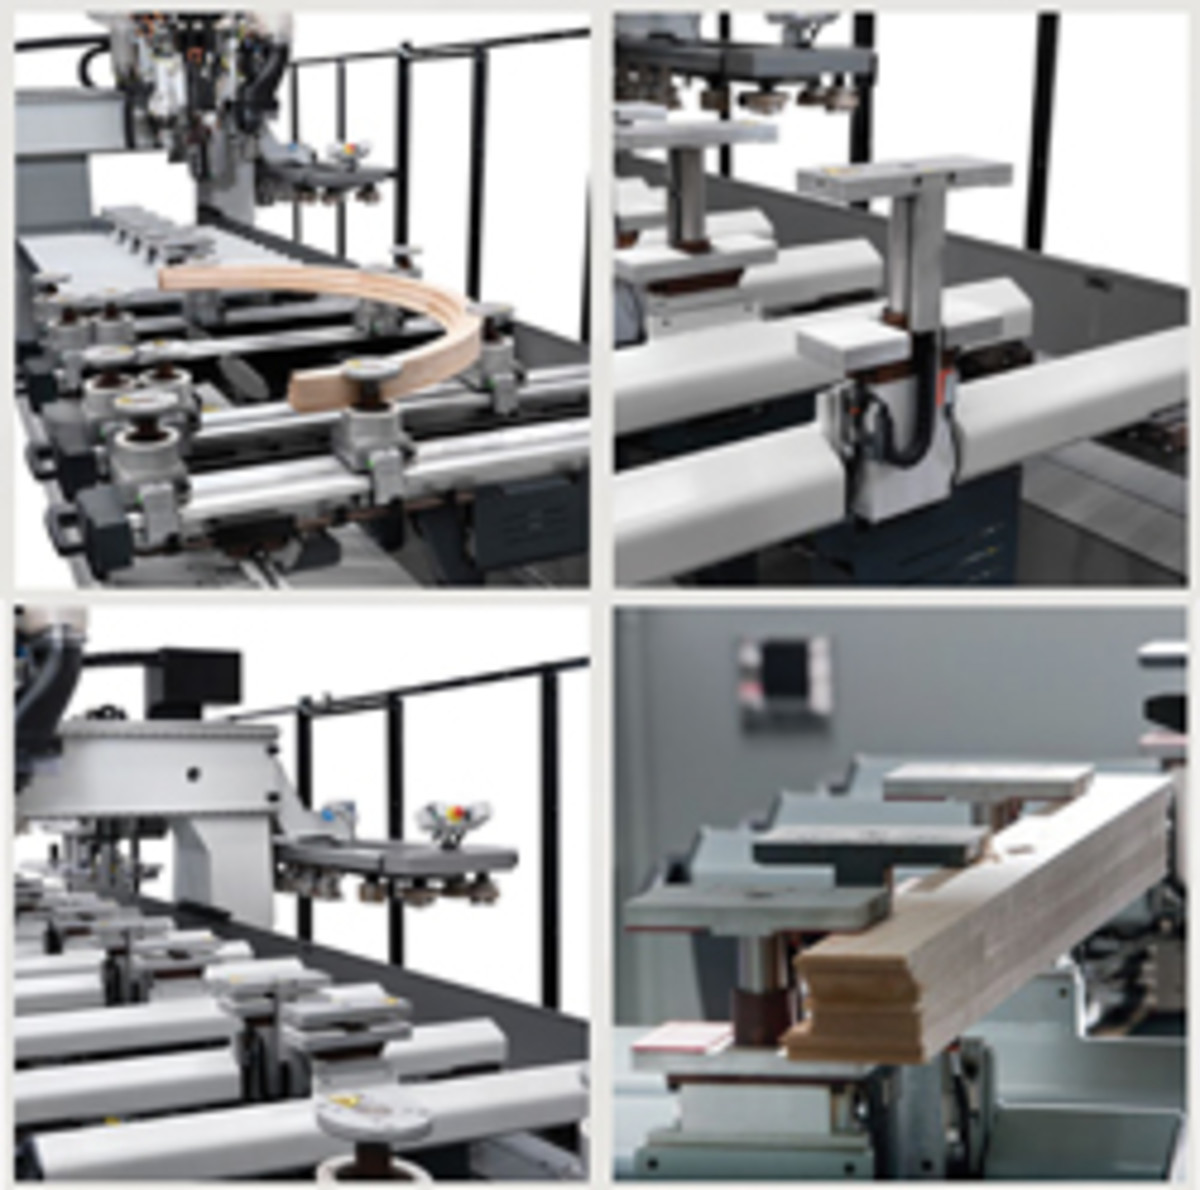 The new Biesse Winline 16 uses an array of work-holding solutions to hold both straight and curved parts, including finger clamps and vacuum modules.